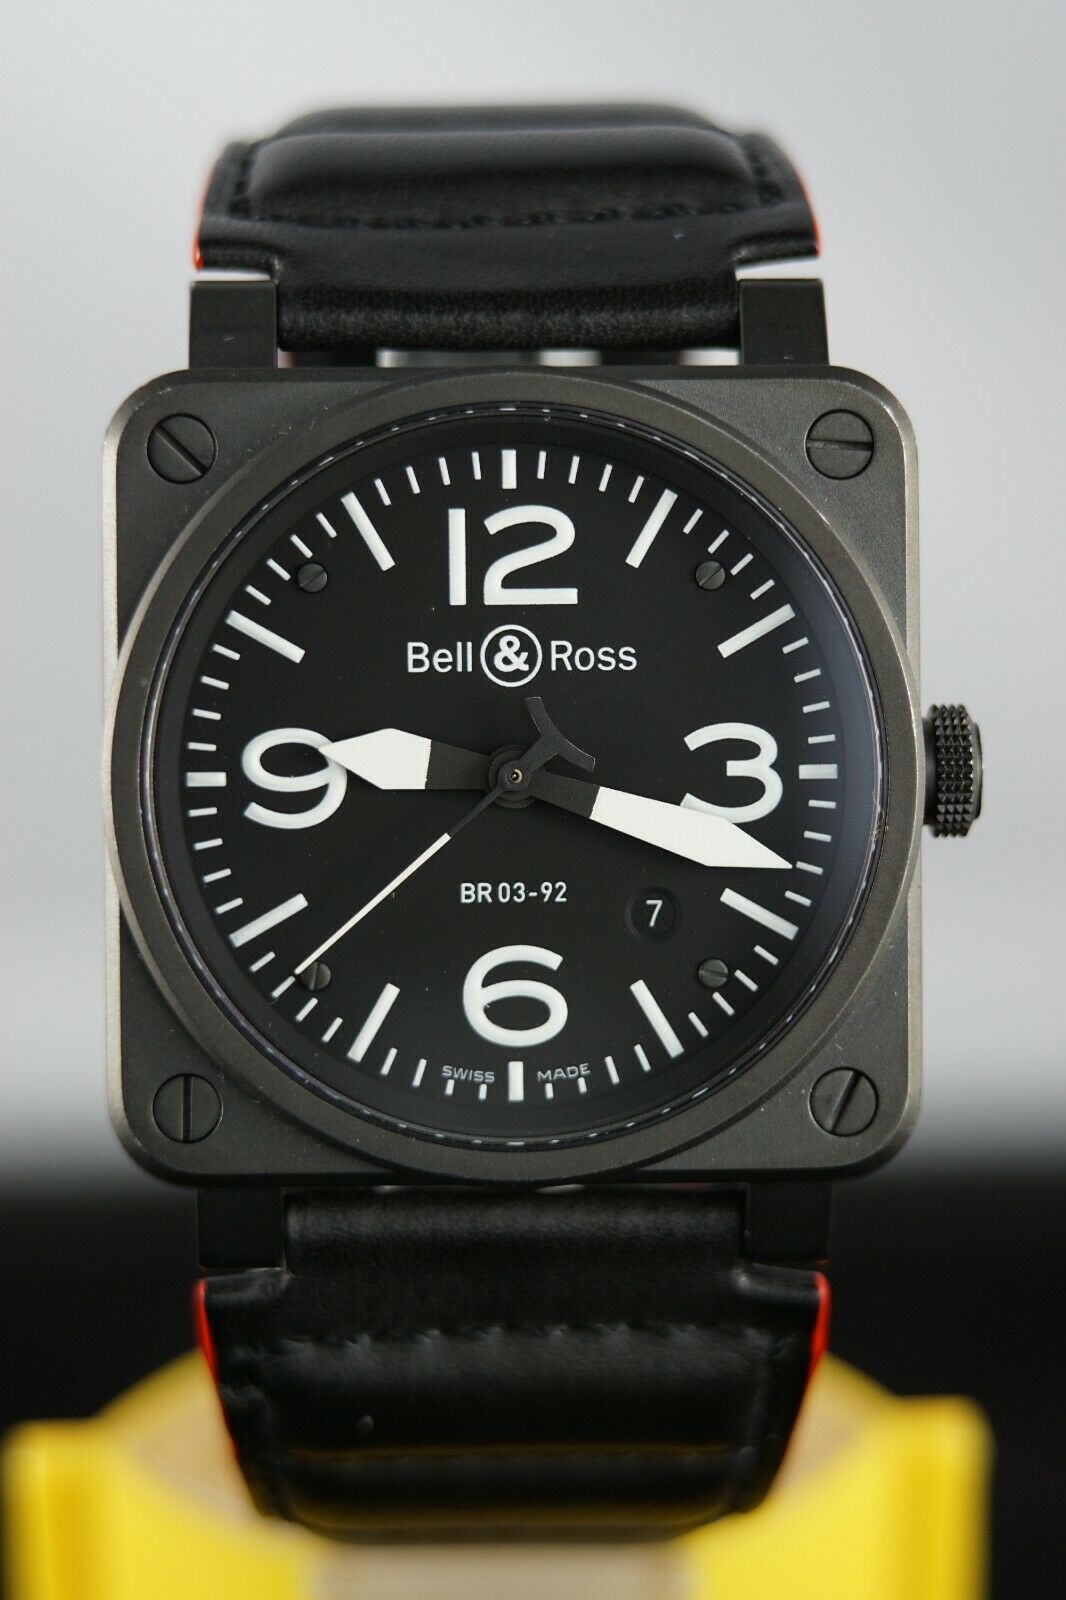 Bell & Ross BR 03-92 Steel BR0392-S-03686 Black Aviator Watch Automatic - watch picture 1